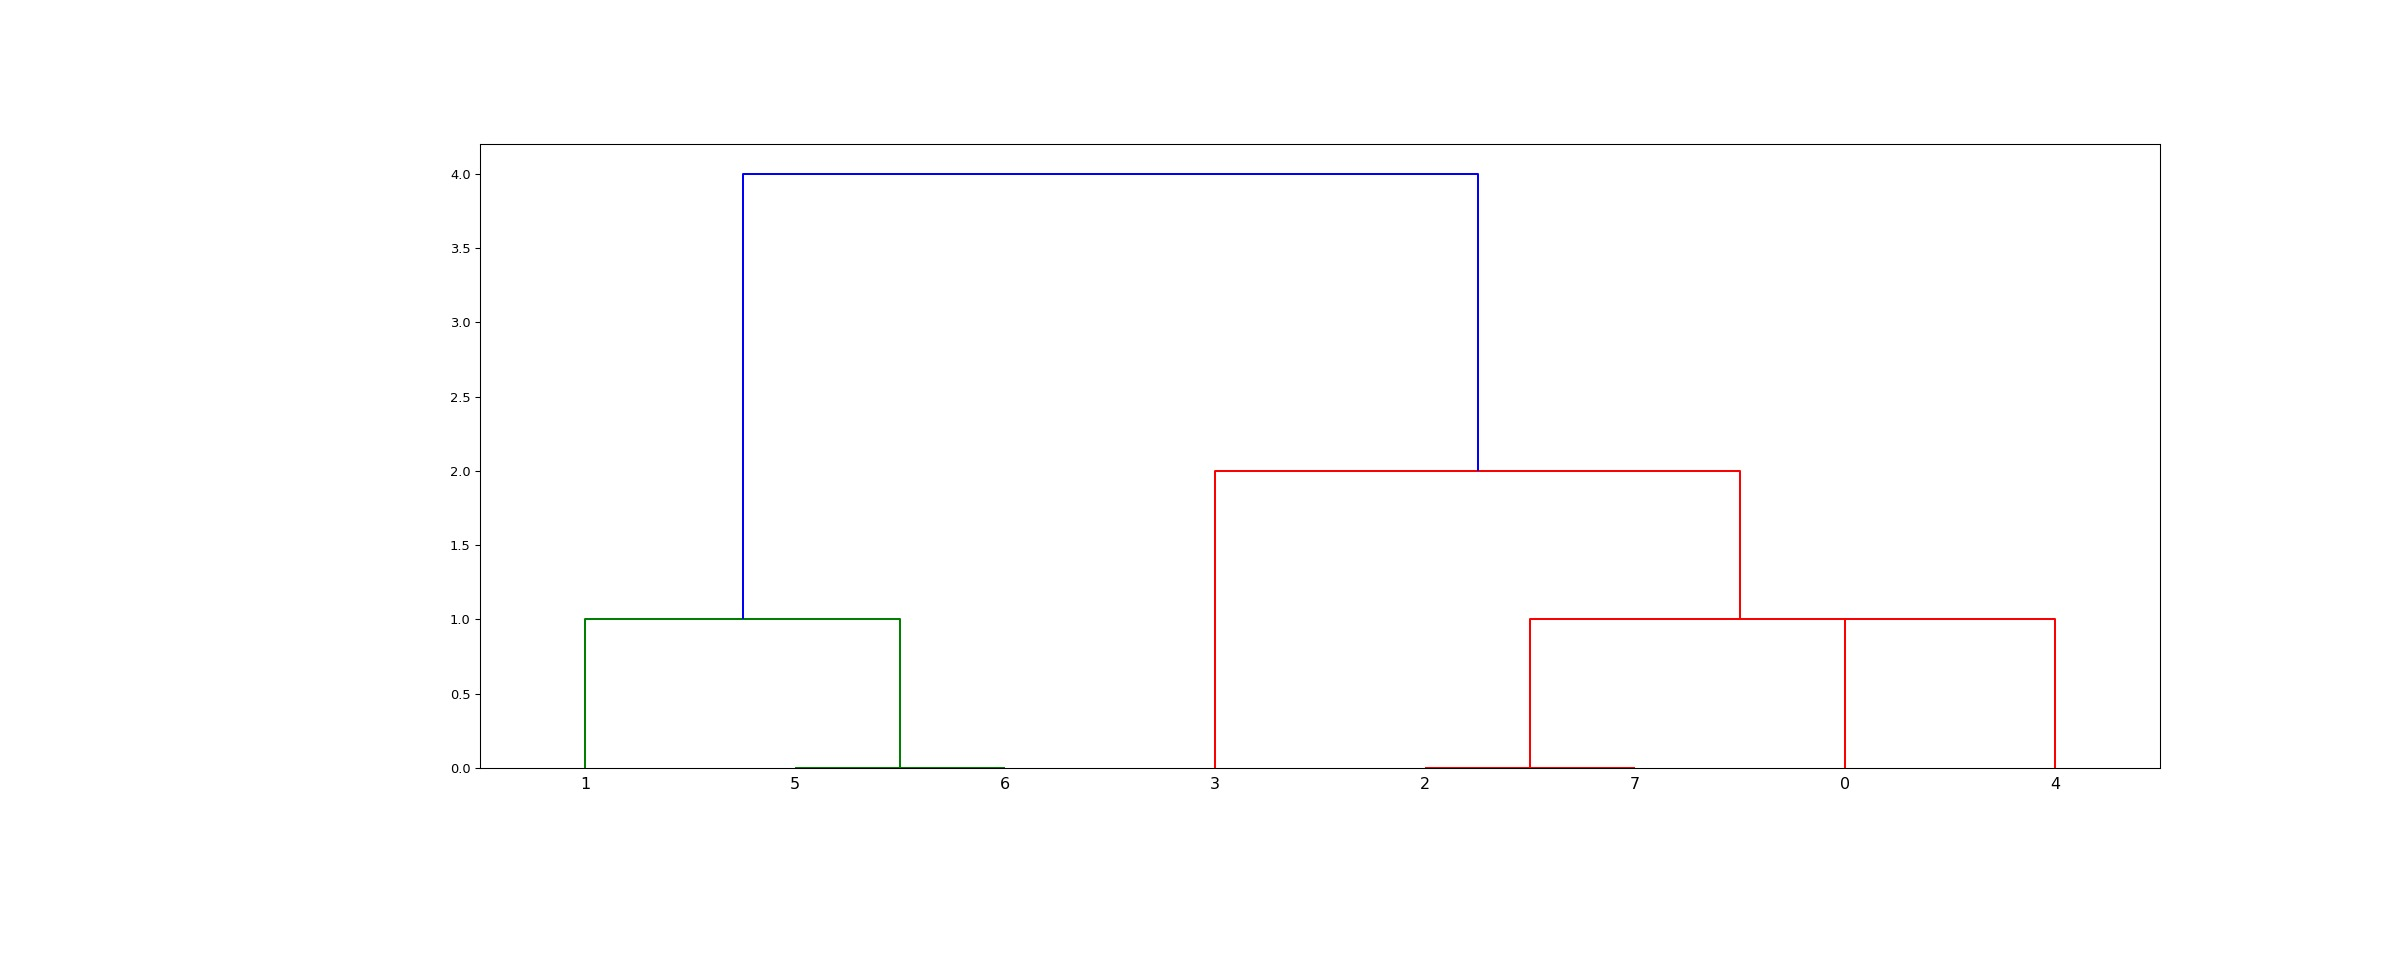 ../_images/scipy-cluster-hierarchy-linkage-1_01.png